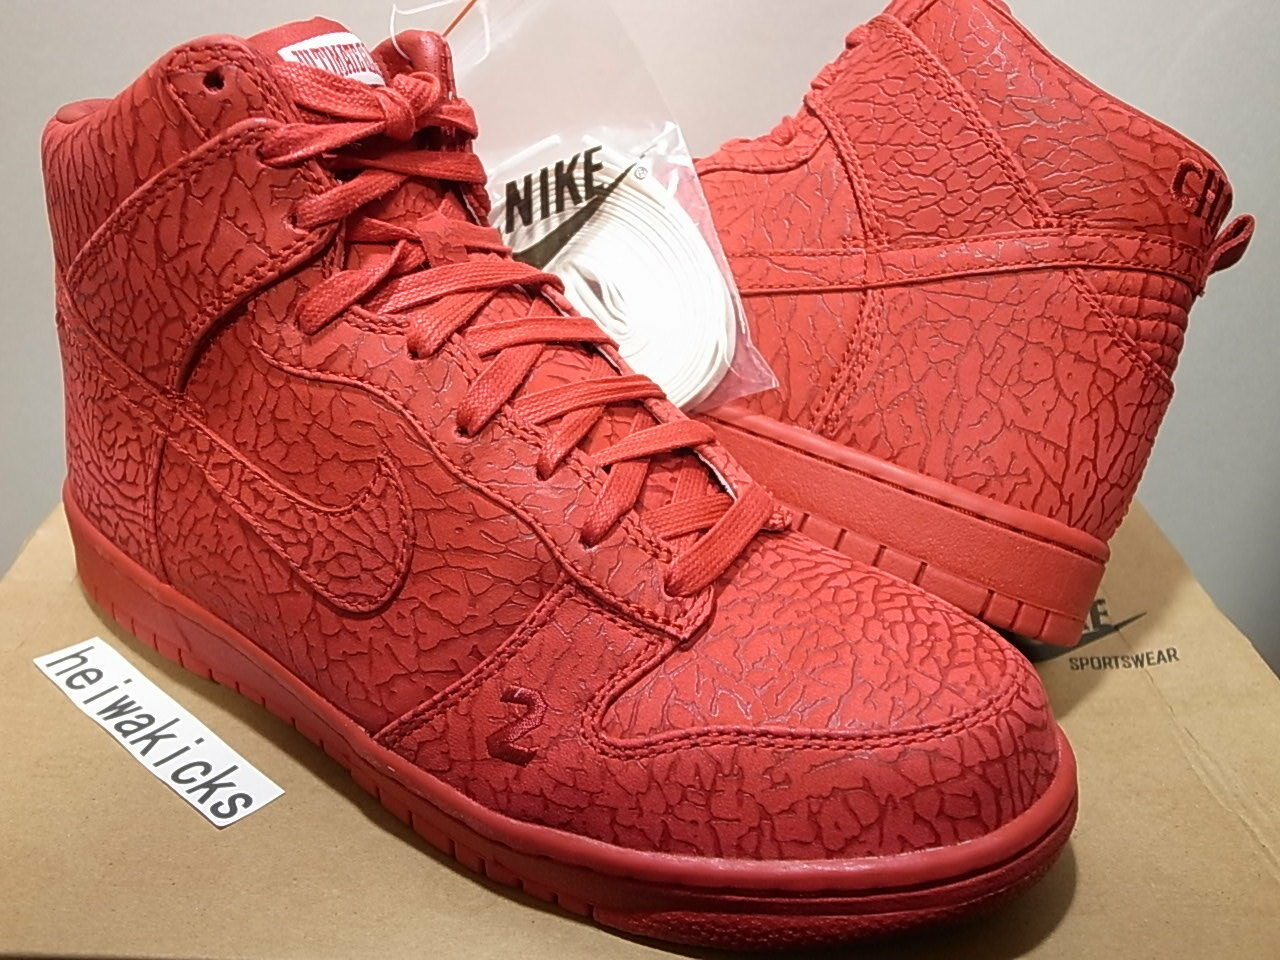 2008 NIKE DUNK HIGH PREMIUM ULTIMATE GLORY CHAVEZ Varsity Red 323955-661 sz 8.5